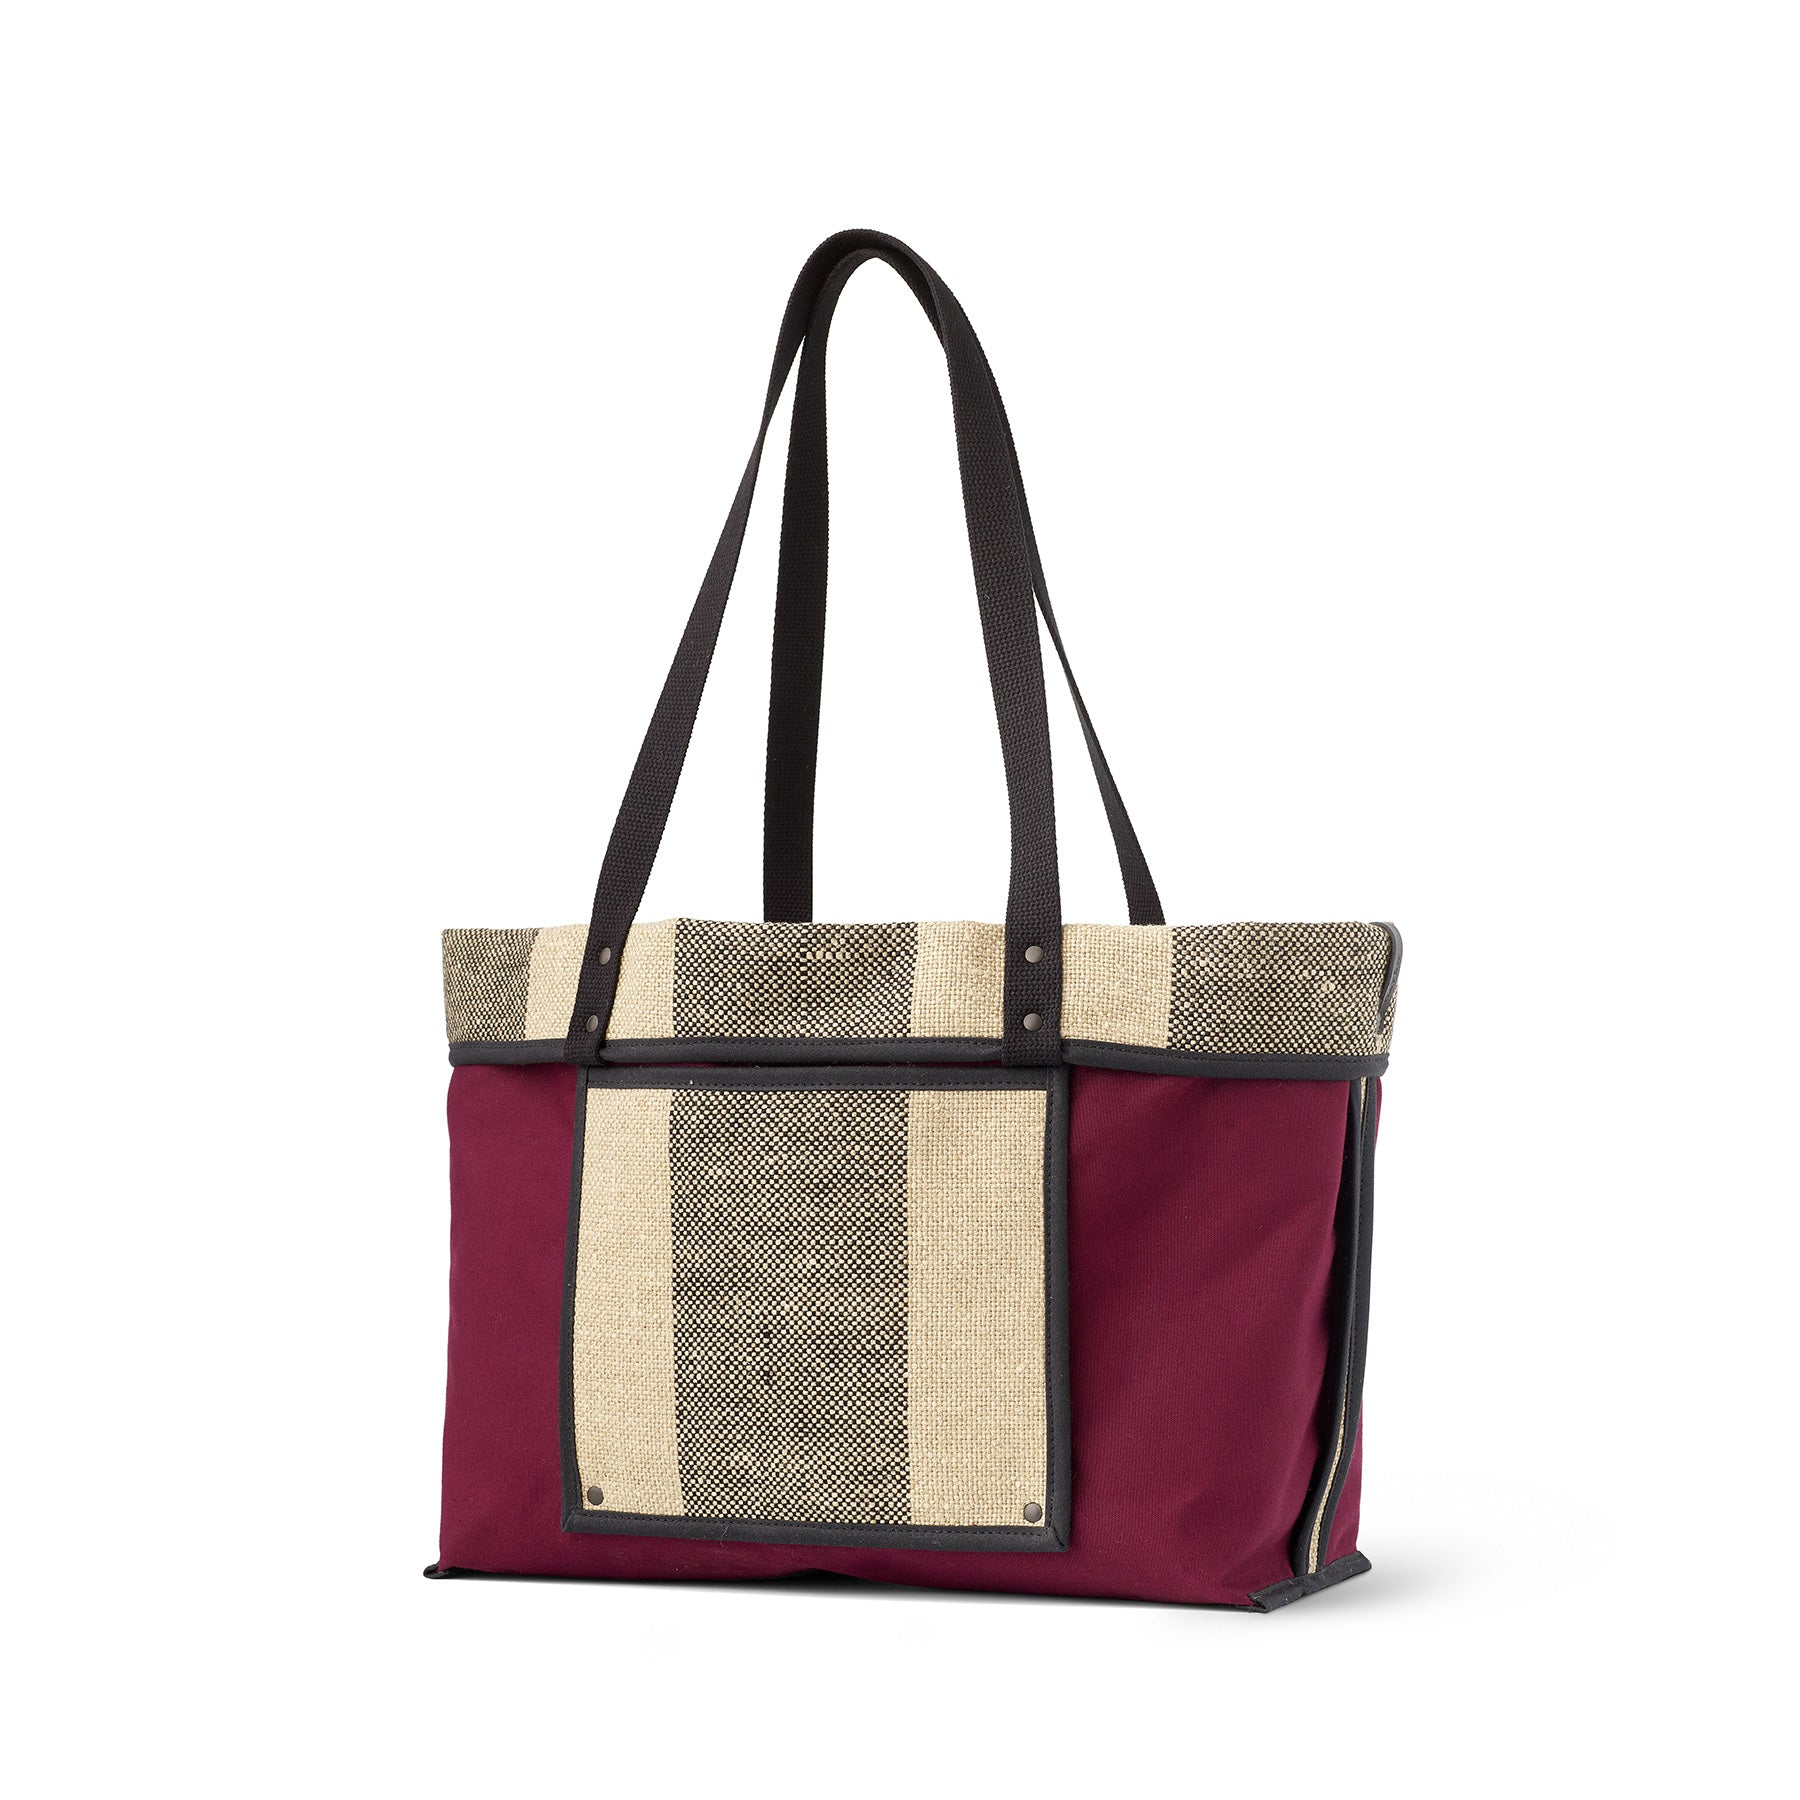 Linen Large Reversible Tote in Pluot Zoom Image 1